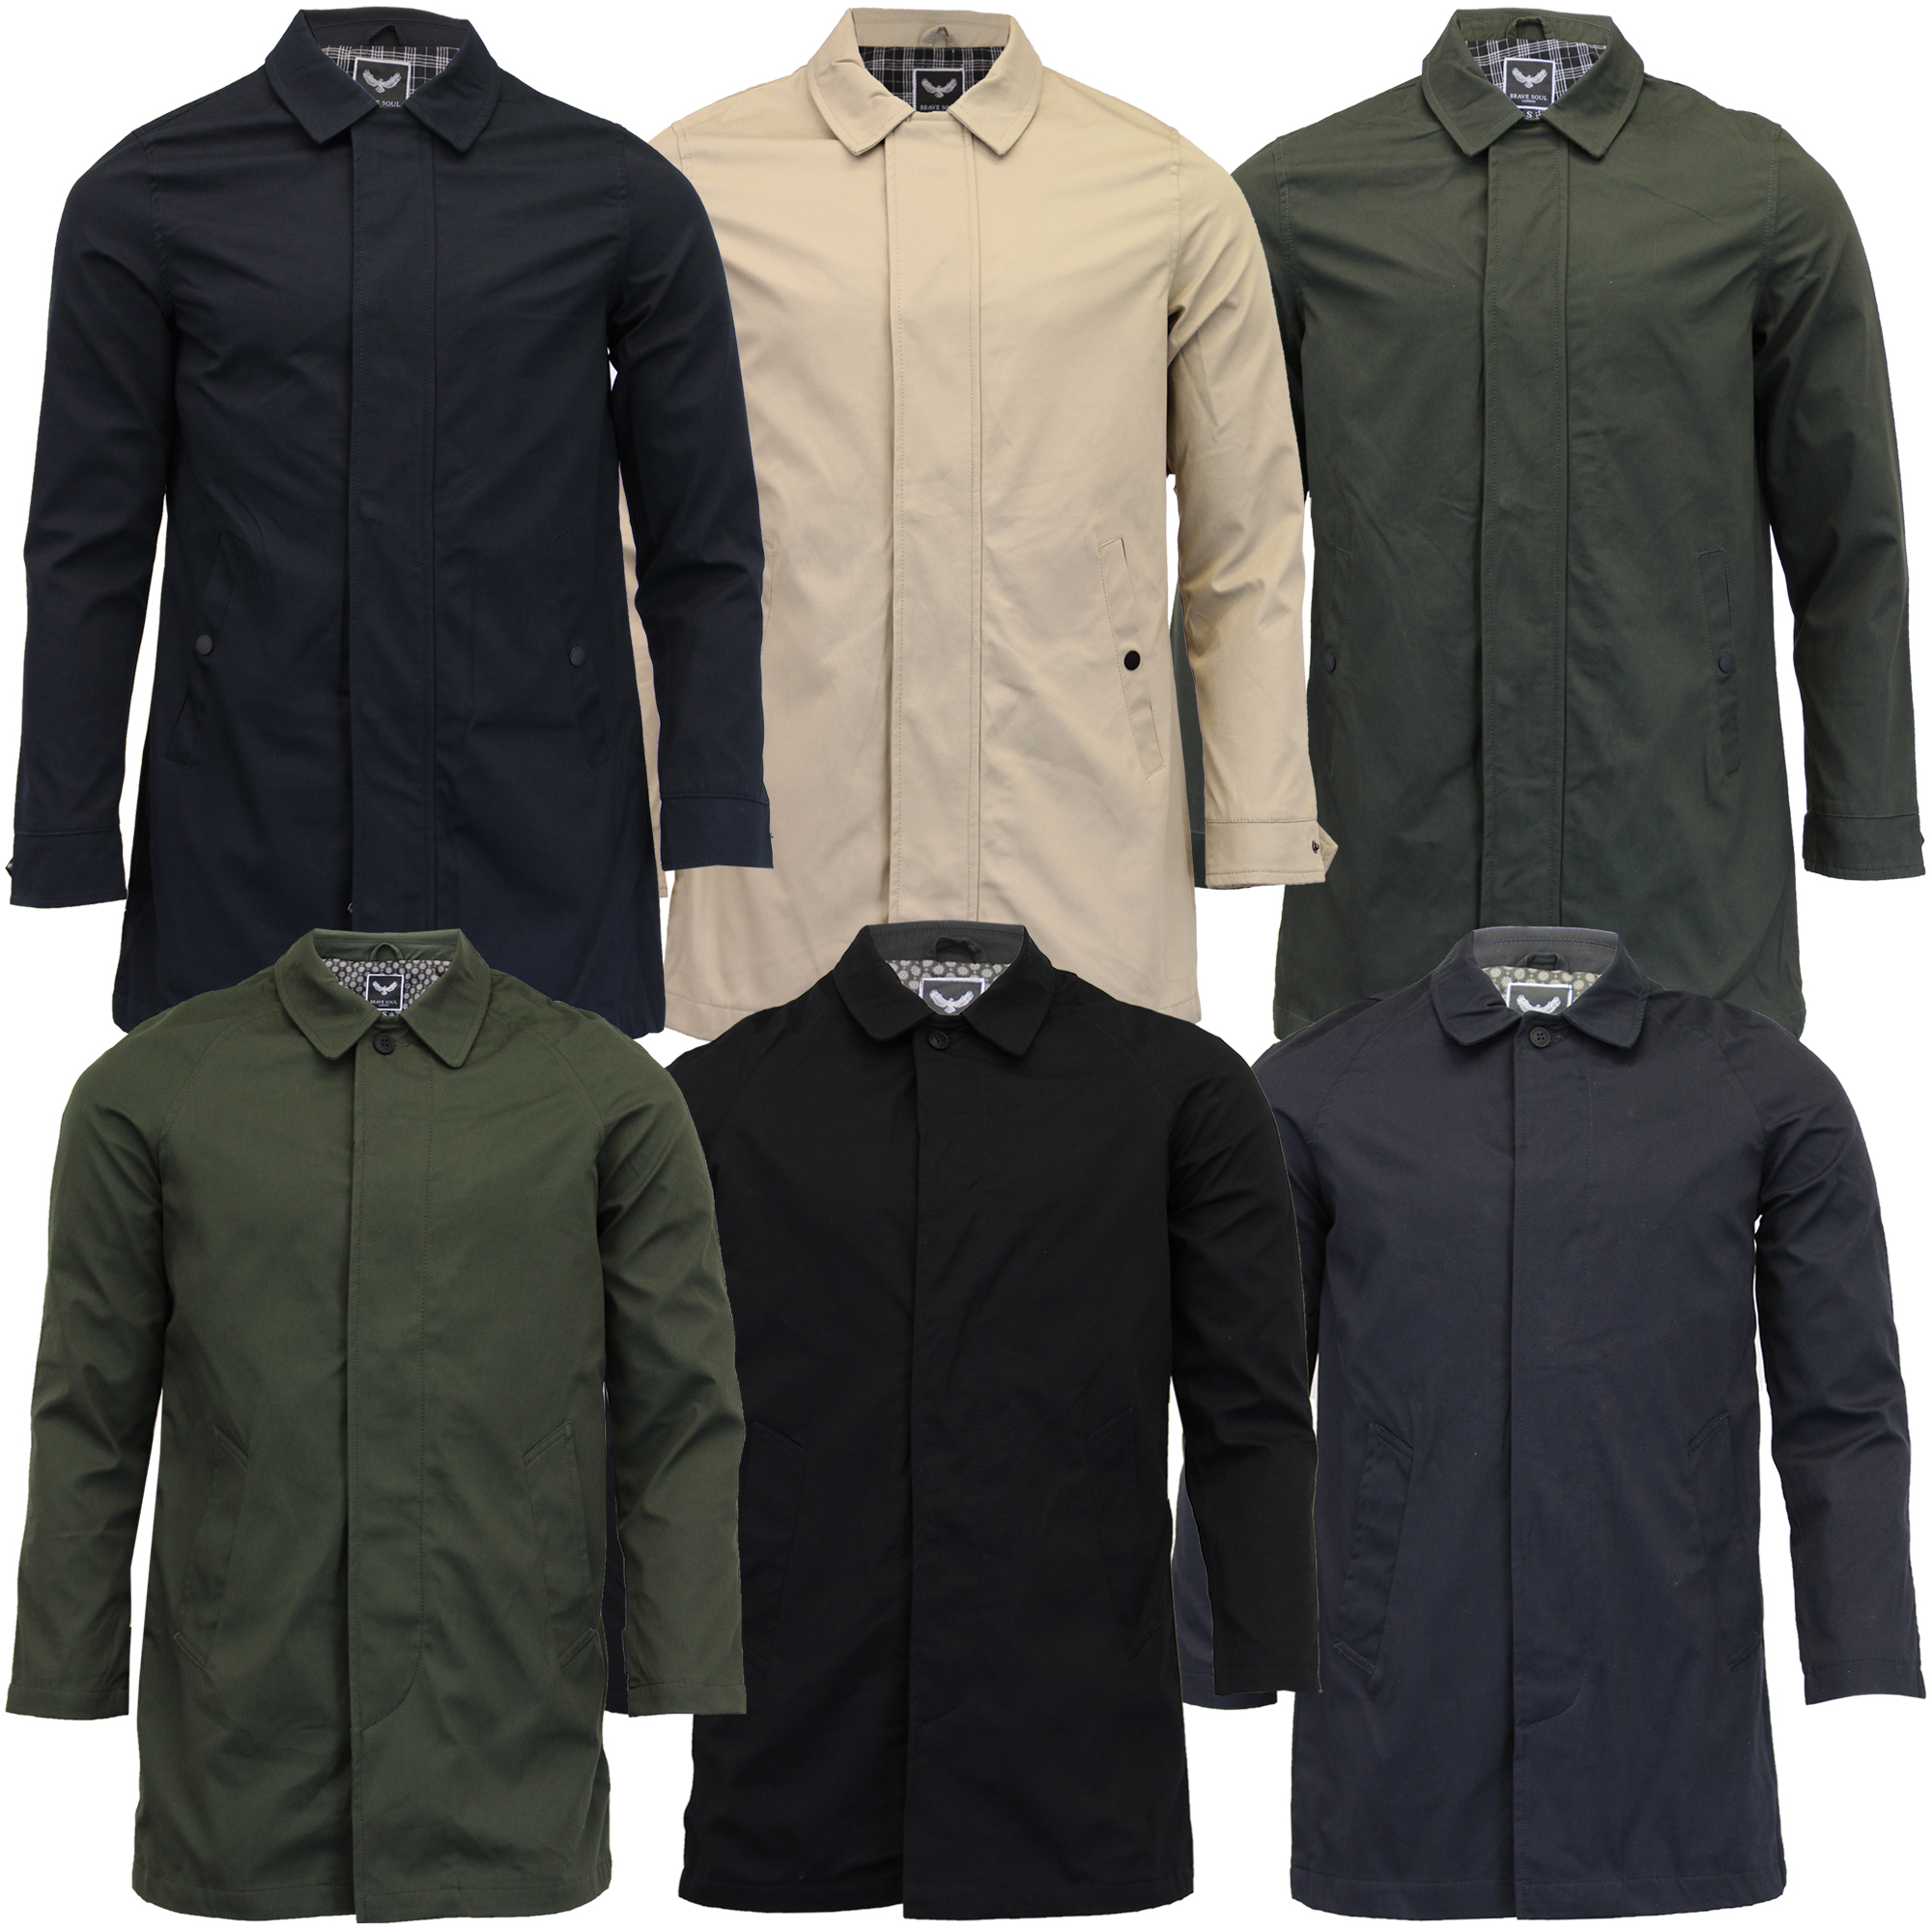 Find mac jacket men at ShopStyle. Shop the latest collection of mac jacket men from the most popular stores - all in one place.